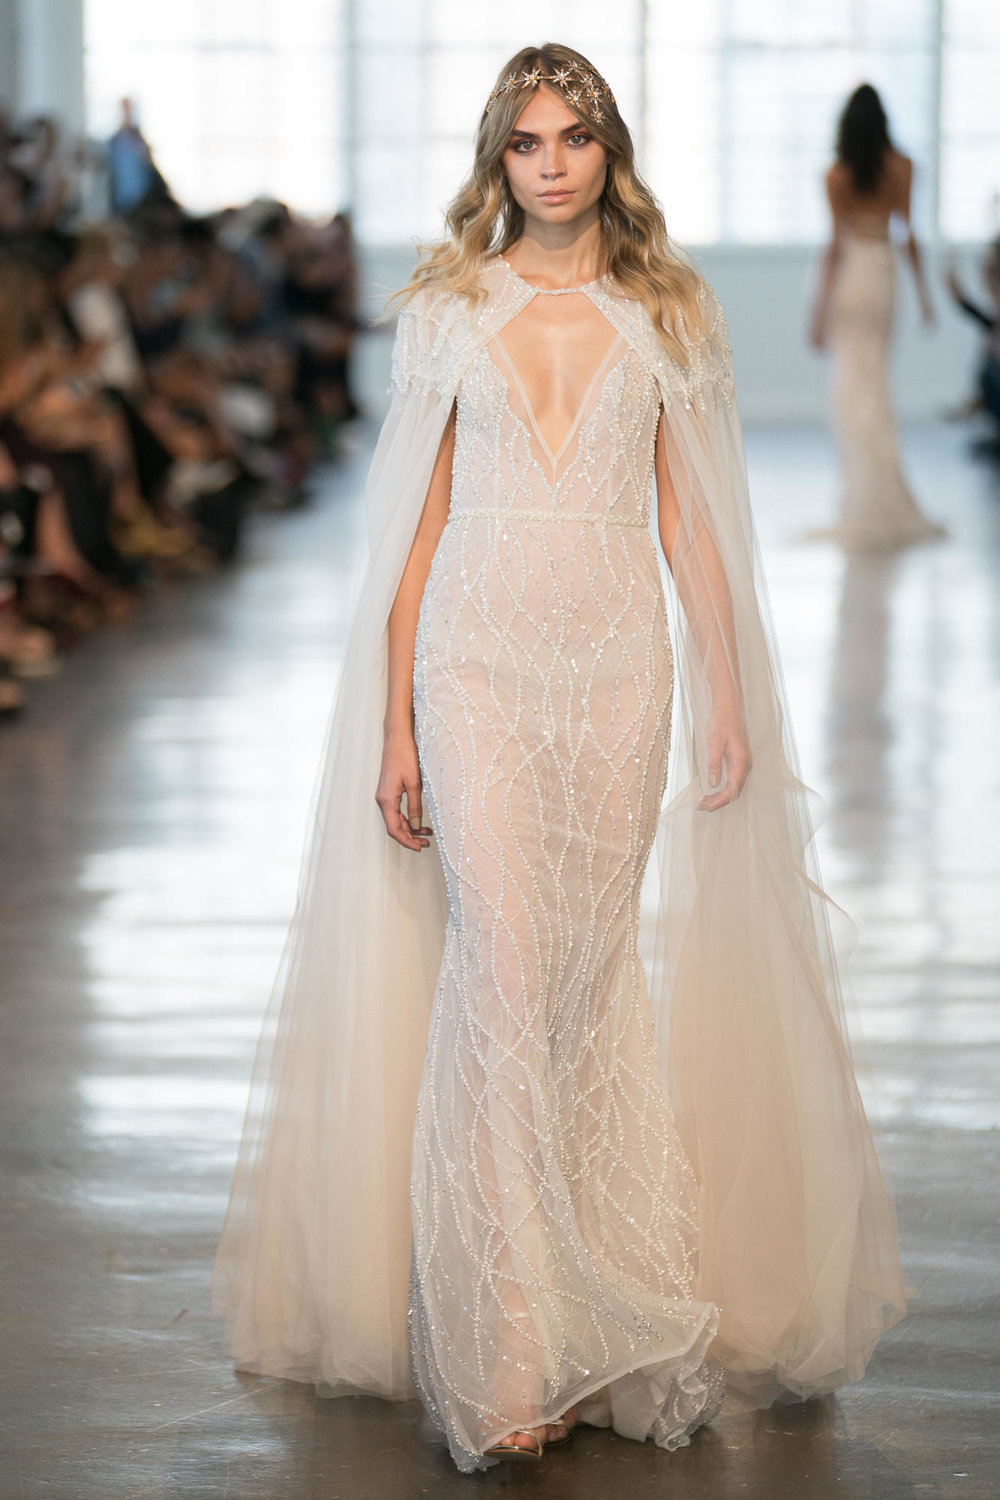 2018-Wedding-Dress-Trend-The-Stylish-and-Modern-Cape